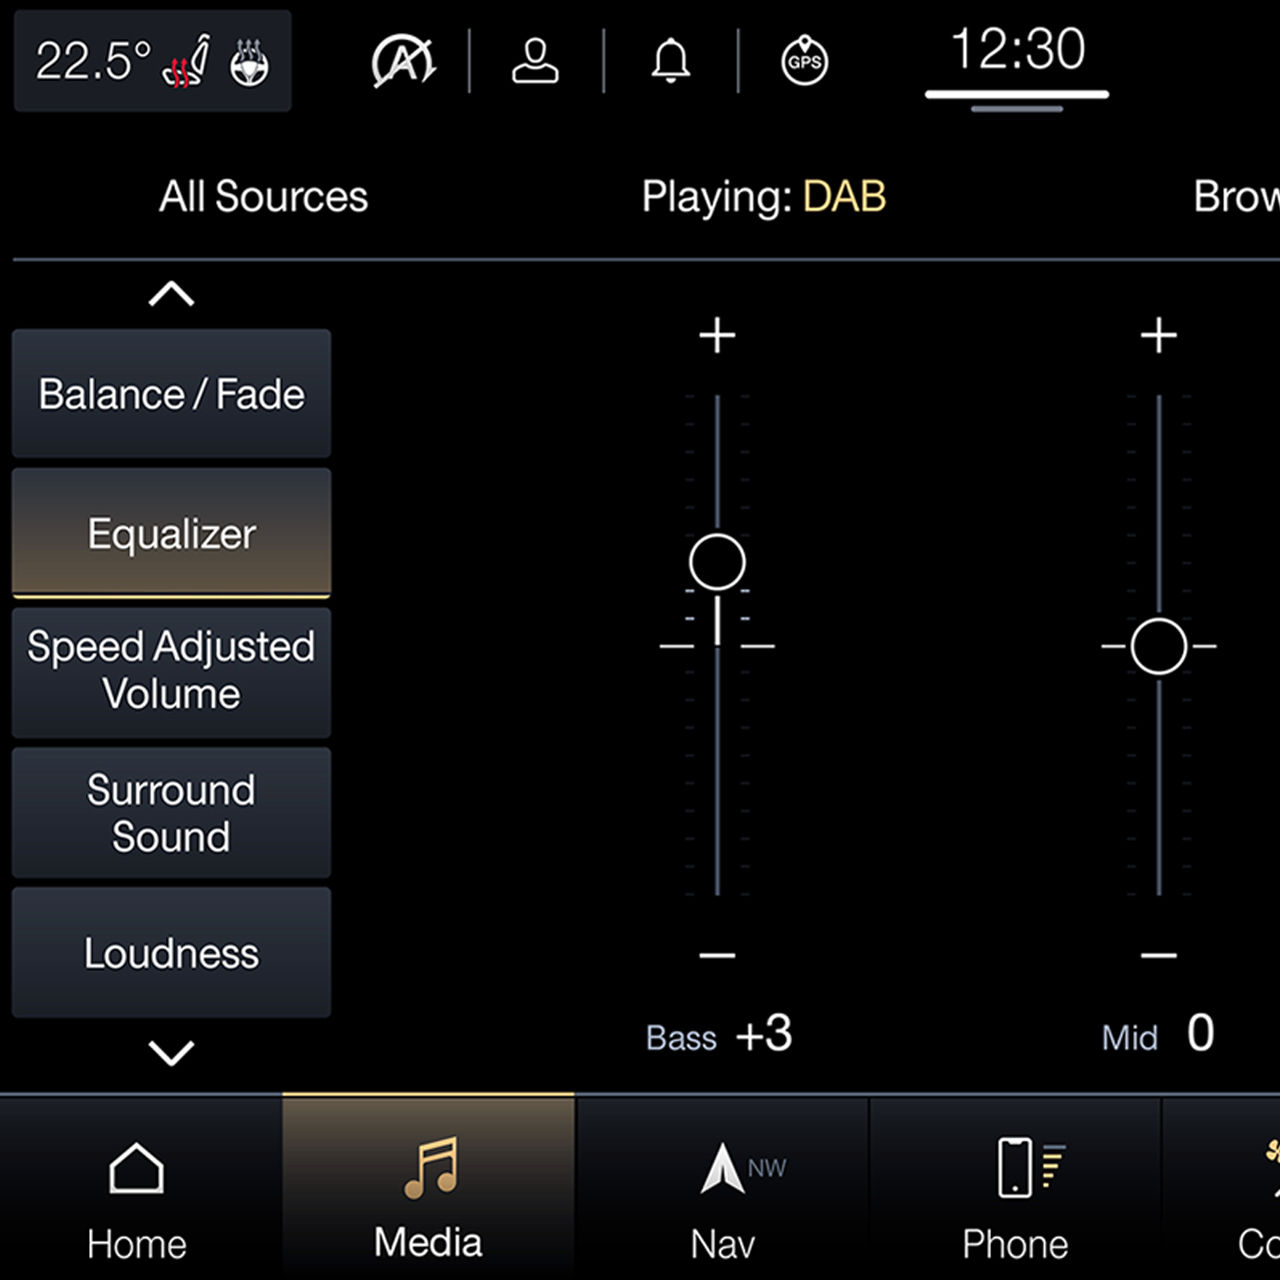 Maserati Soundsysteme Harman Kardon und Bowers & Wilkins - Playing DAB